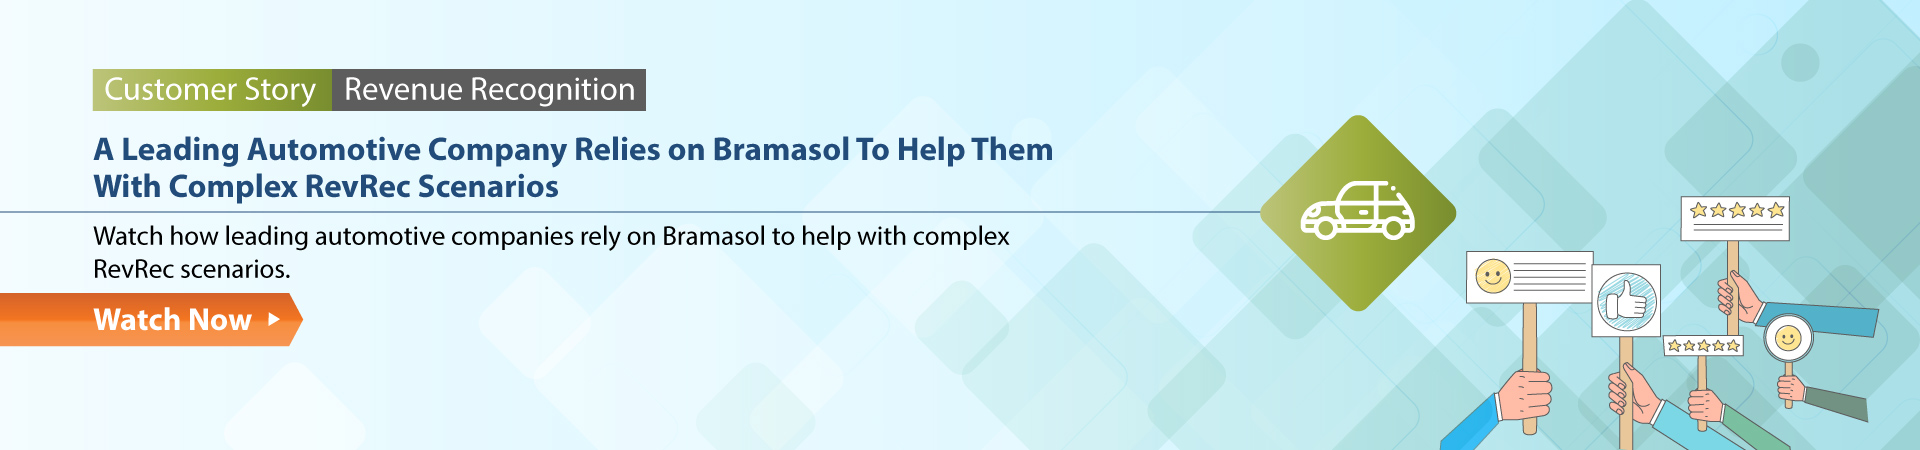 A Leading Automotive Company Relies on Bramasol To Help Them With Complex RevRec Scenarios Customer Story